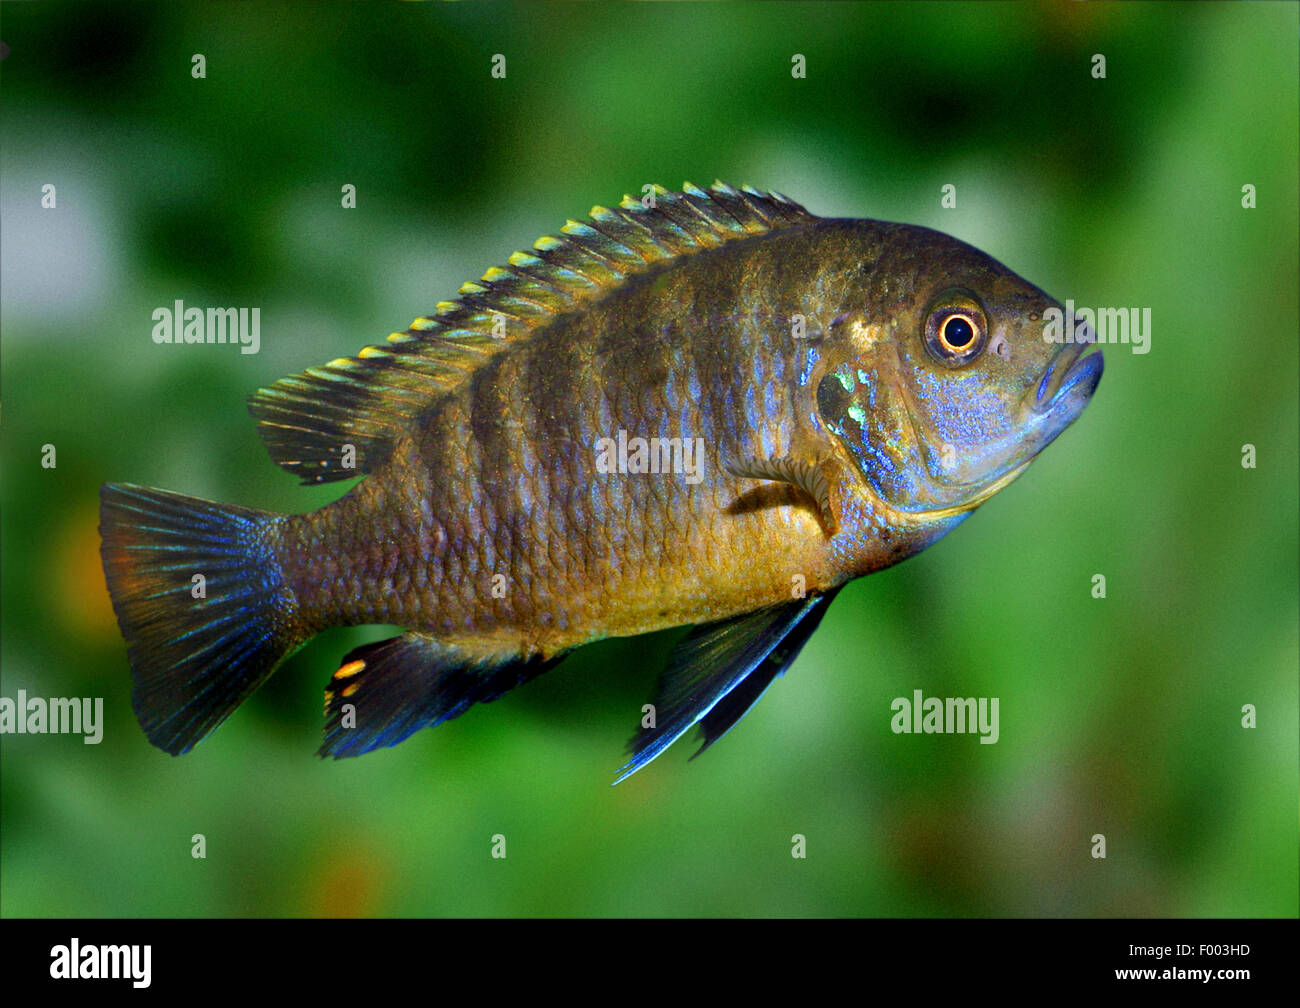 Red-shoulder Malawi peacock cichlid, Aulonocara Fort Maguire (Aulonocara hansbaenschi), swimming - Stock Image